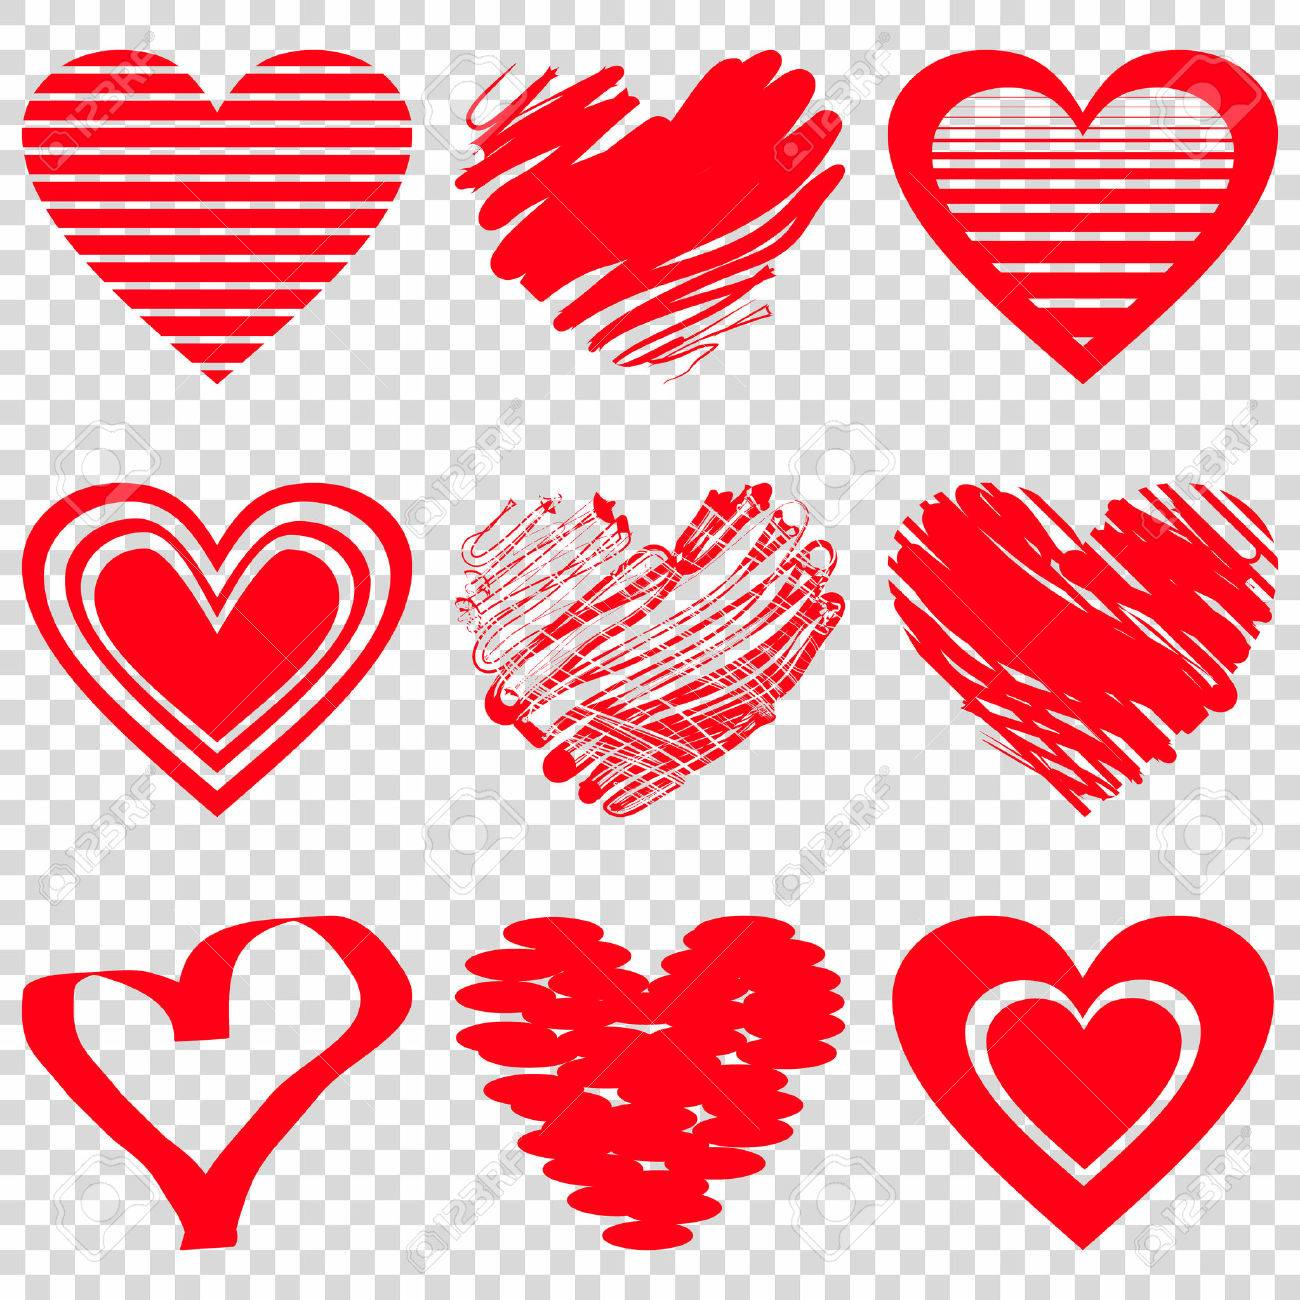 Red Heart Icons Vector Illustration For Happy Valentines Day